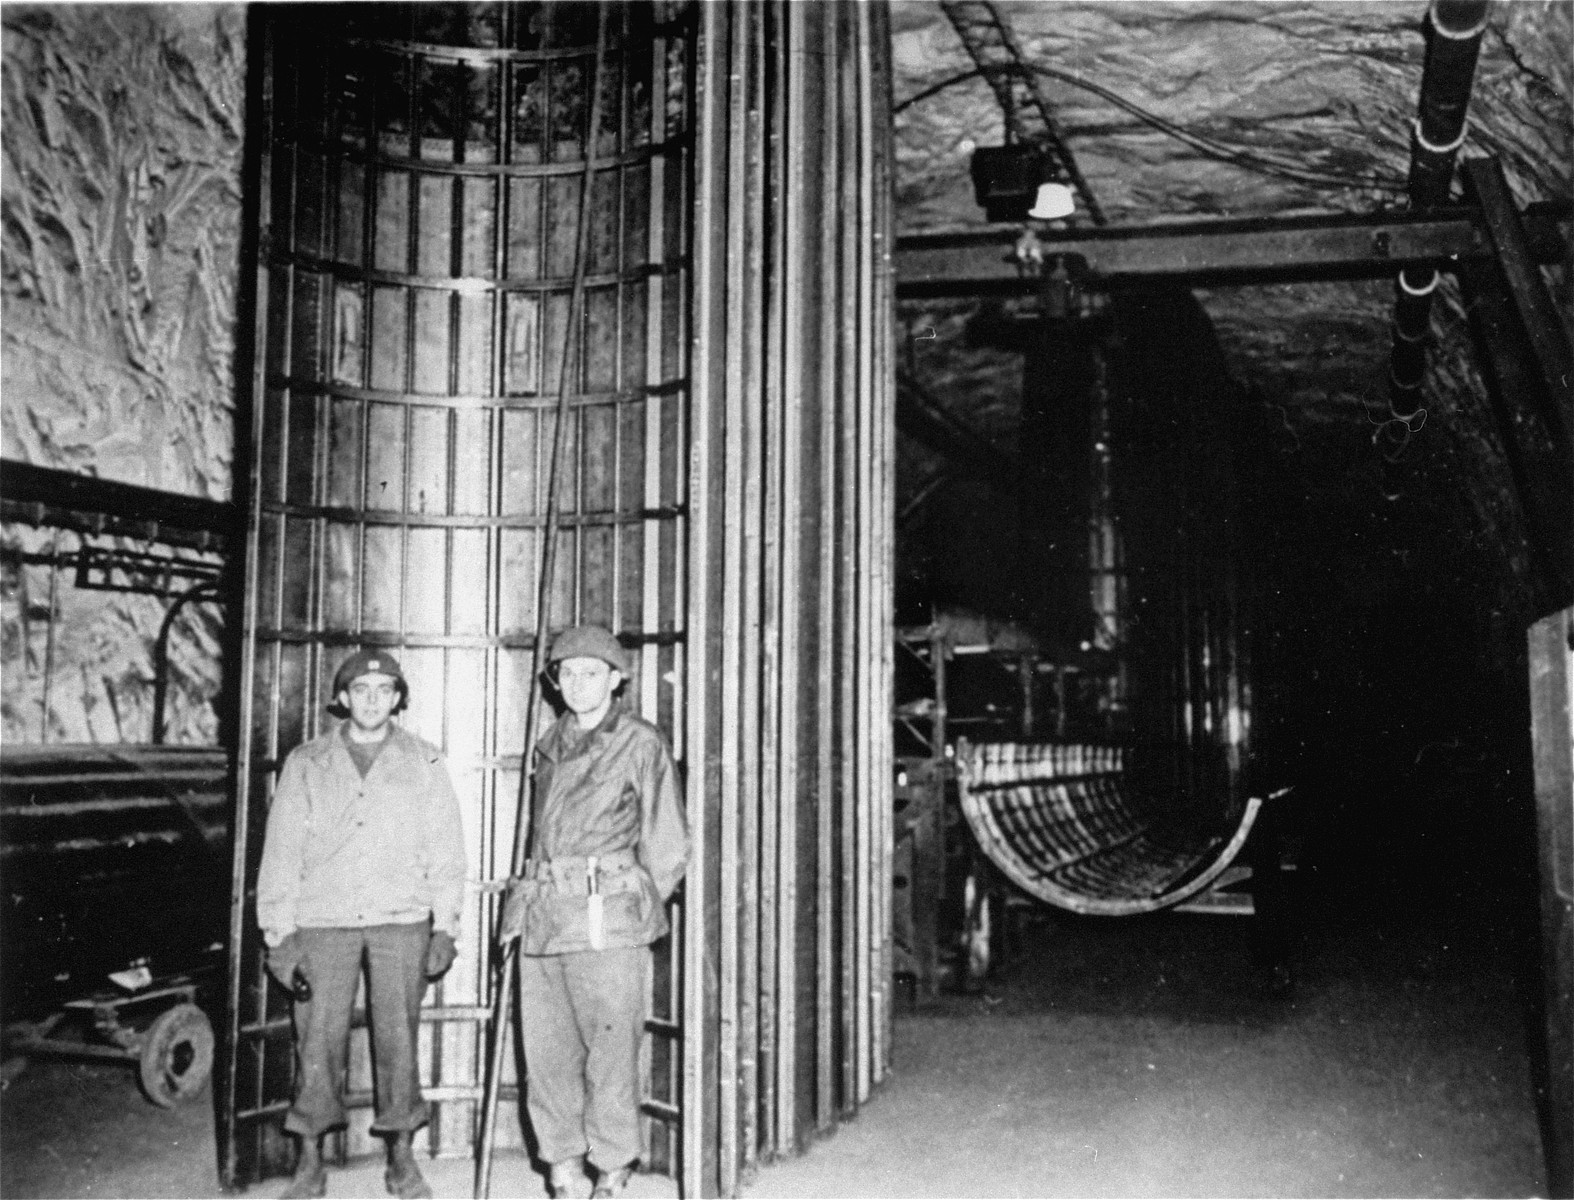 Two American soldiers stand next to a completed half-section of a V-2 fuselage in the underground rocket factory at Dora-Mittelbau.